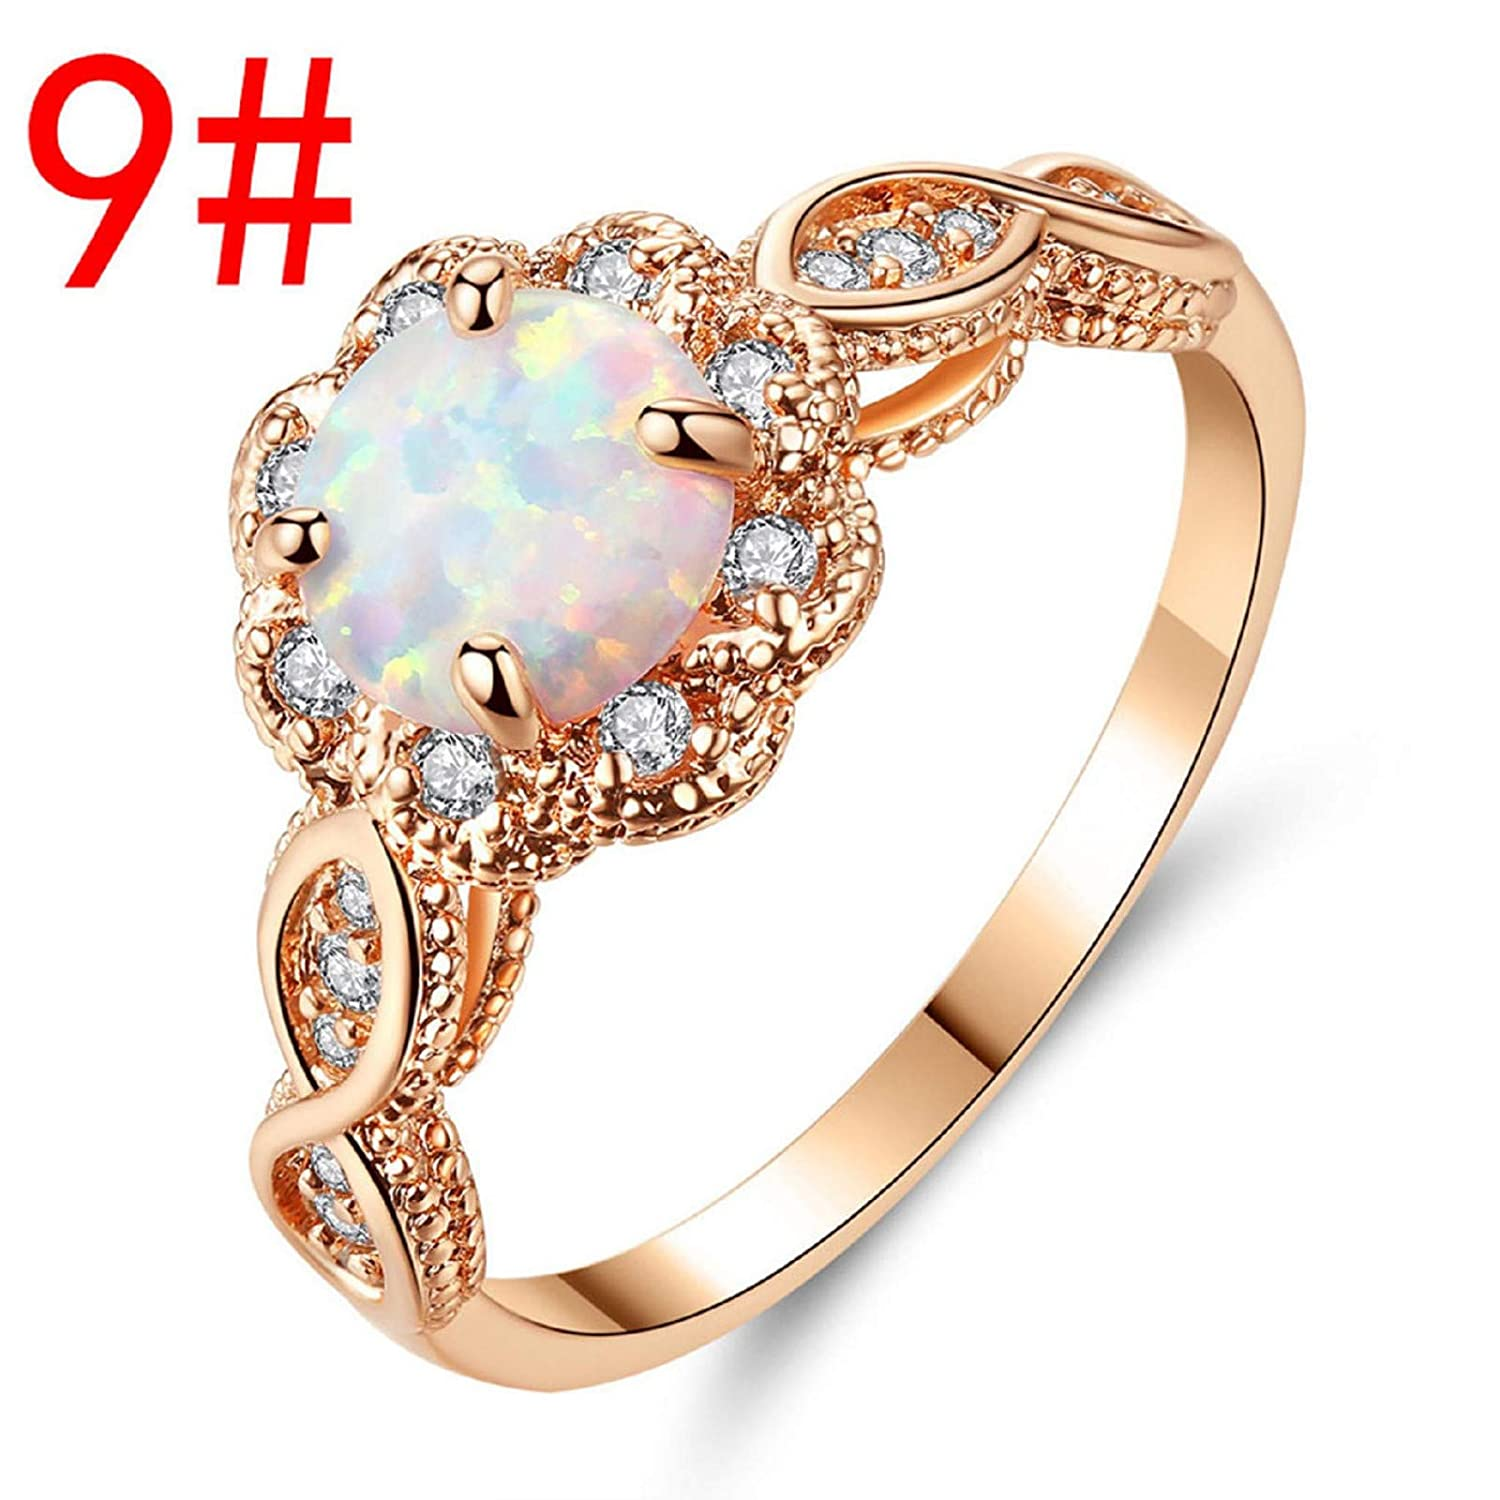 nanzhushangmao 925 Sterling Silver Real Genuine Oval Cut Fire Opal Diamond Band Rings Jewelry Gift